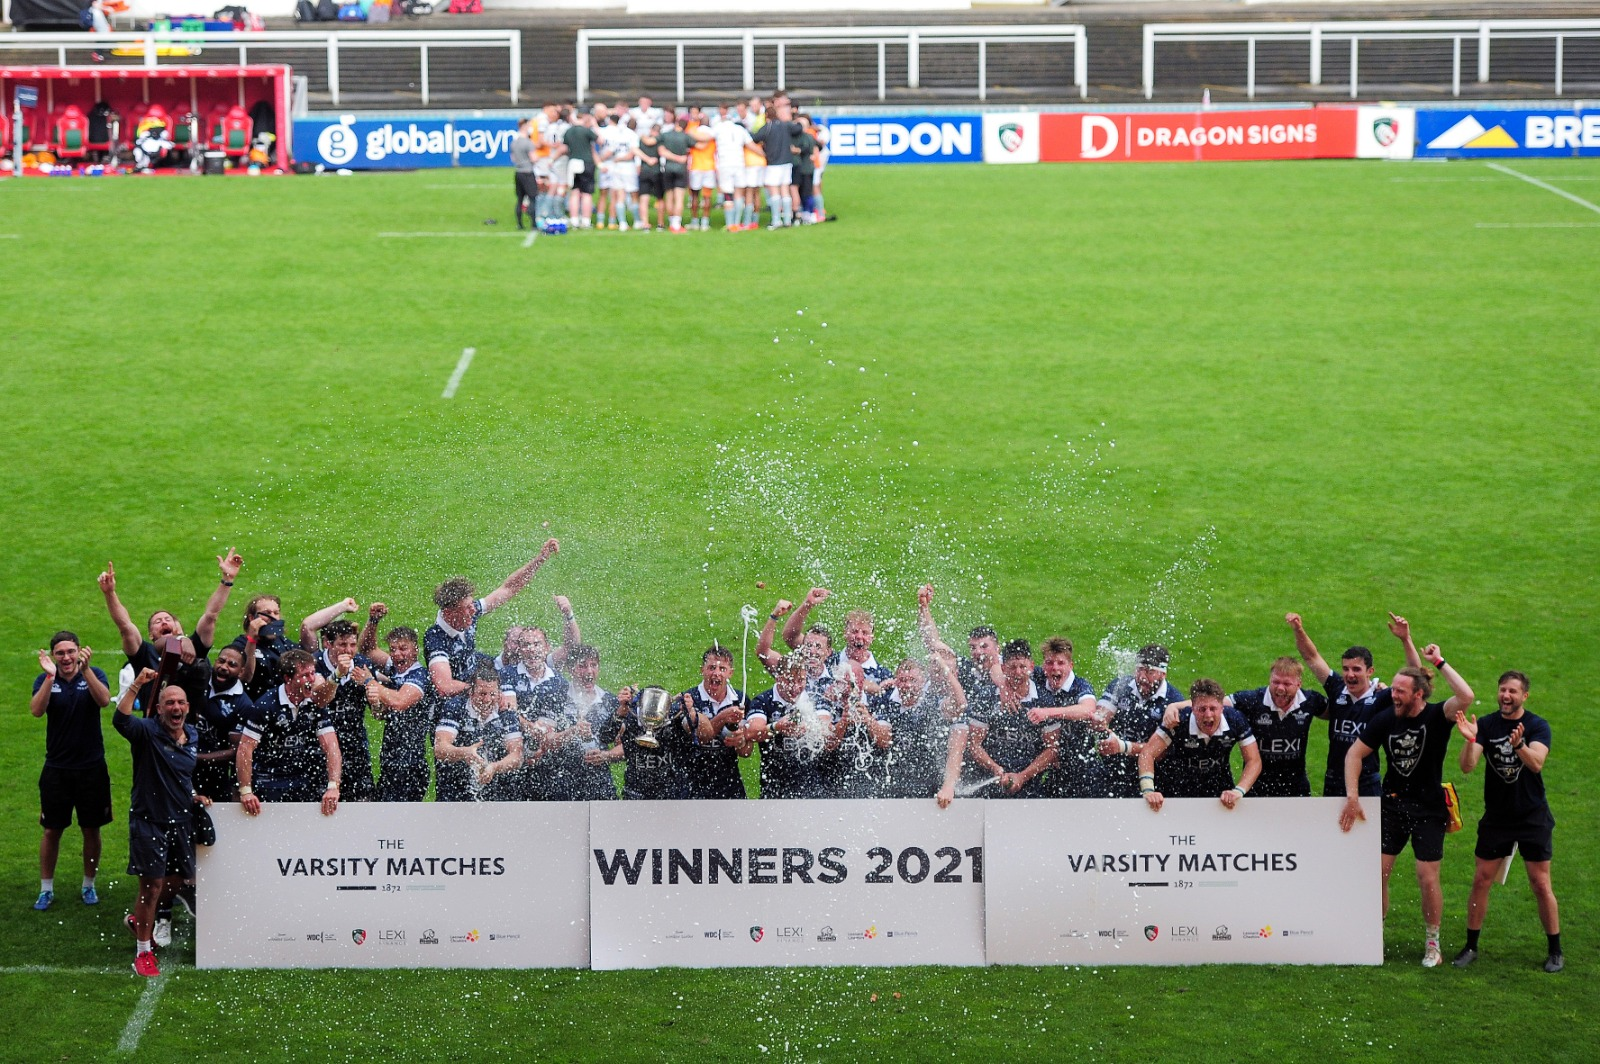 OURFC men's team are victorious as women's team are defeated in 2021 Varsity matches